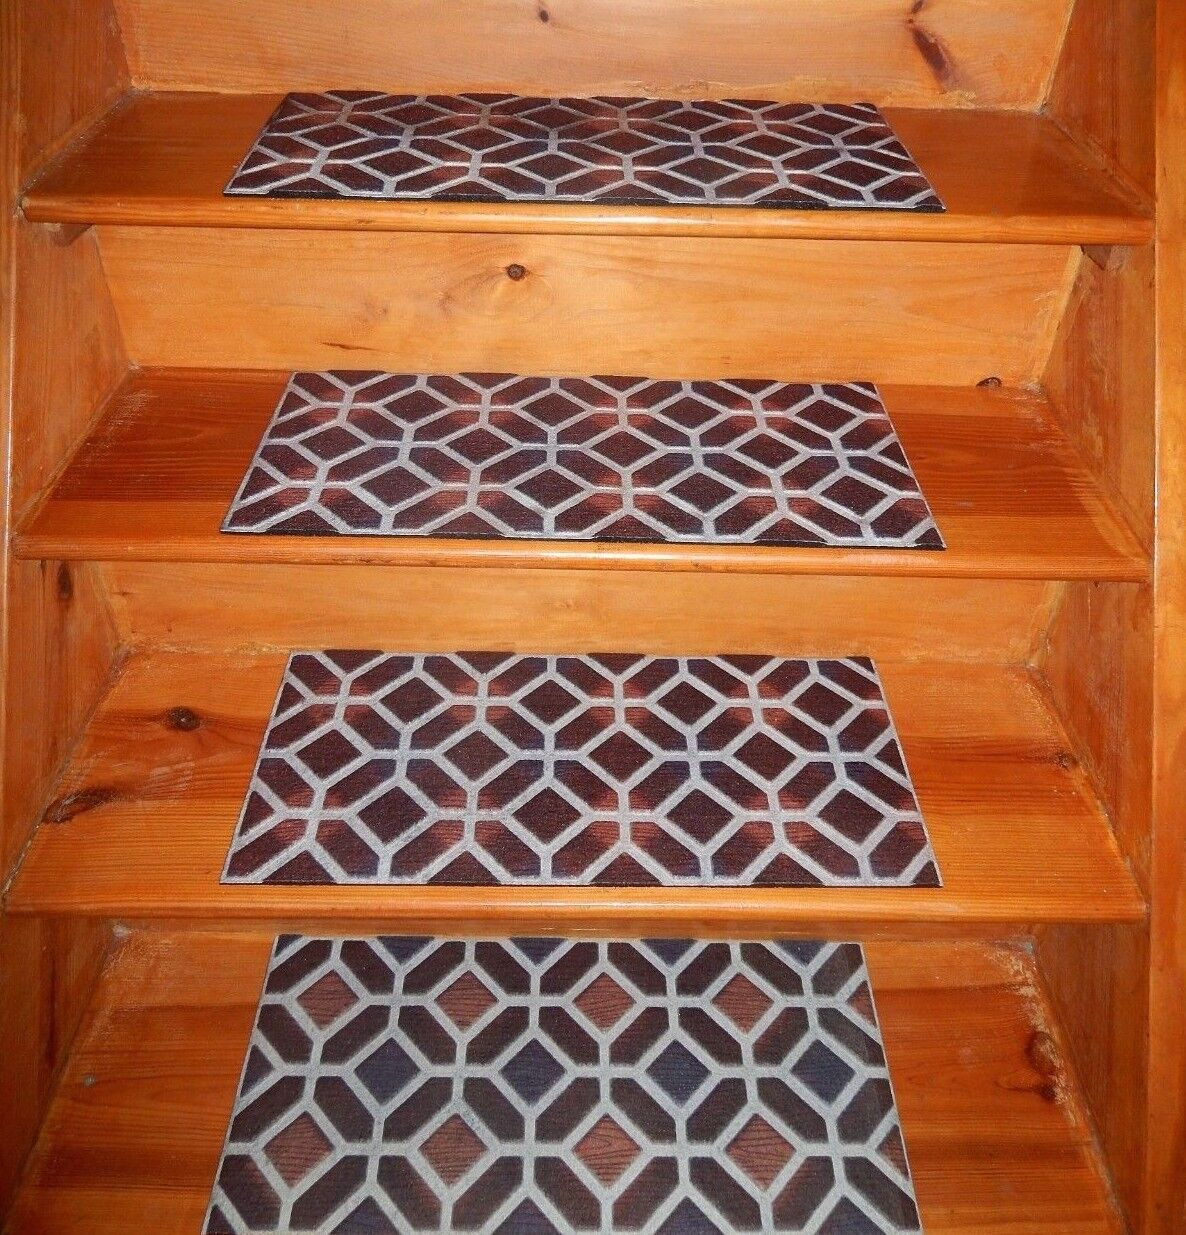 4 Step 10 X 24 100 Rubber Outdoor Stair Treads For Sale Online